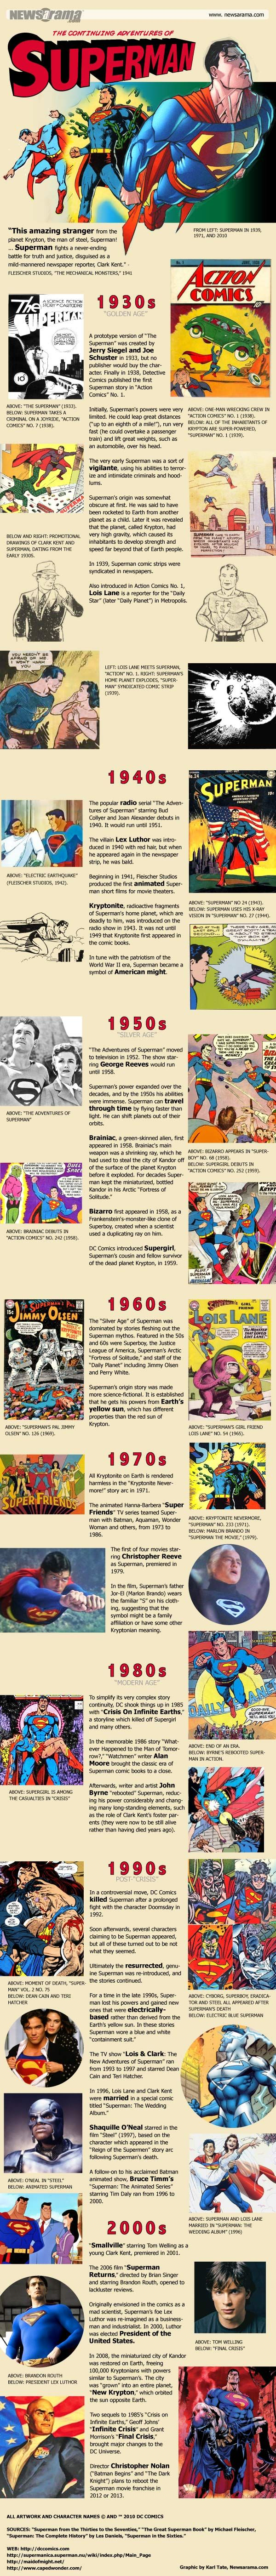 Superman history infographic